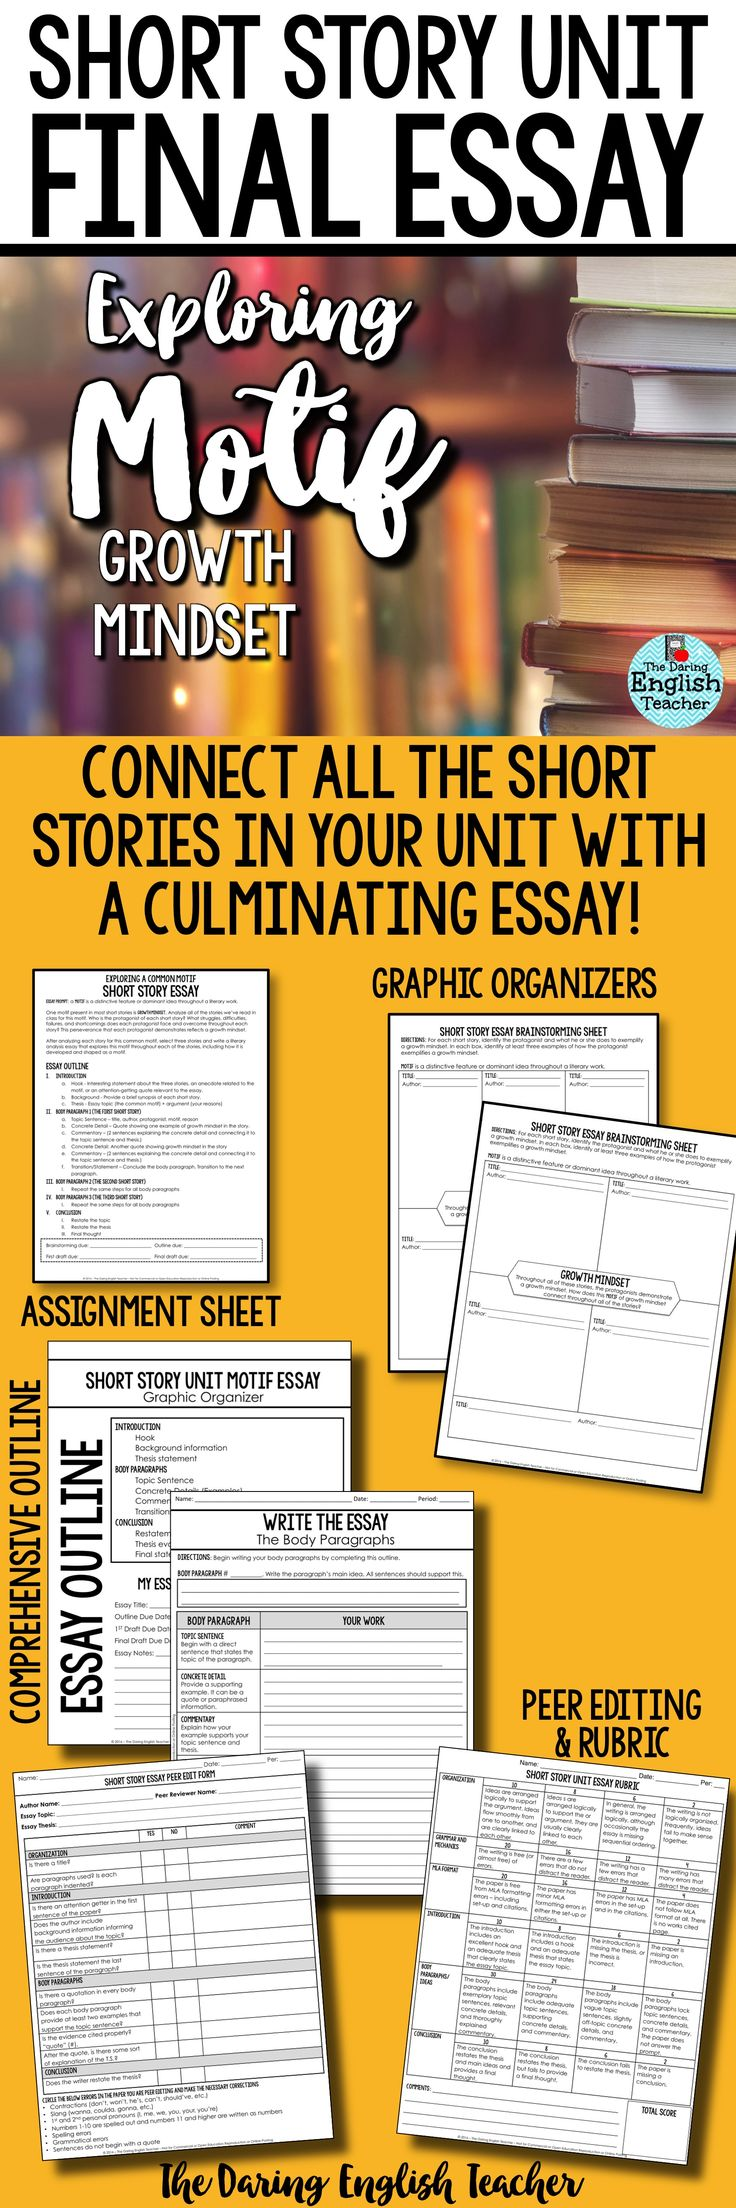 Essay Writing On Technology Best Analytical Writing Images Teaching Short Story Unit Final Essay  Analyzing Motif Growth Mindset Teaching Argument Persuasion Essay Topics also Response Essay Topics Essay Writing For Elementary Students Best Writing Images Teaching  Critical Essays On Othello